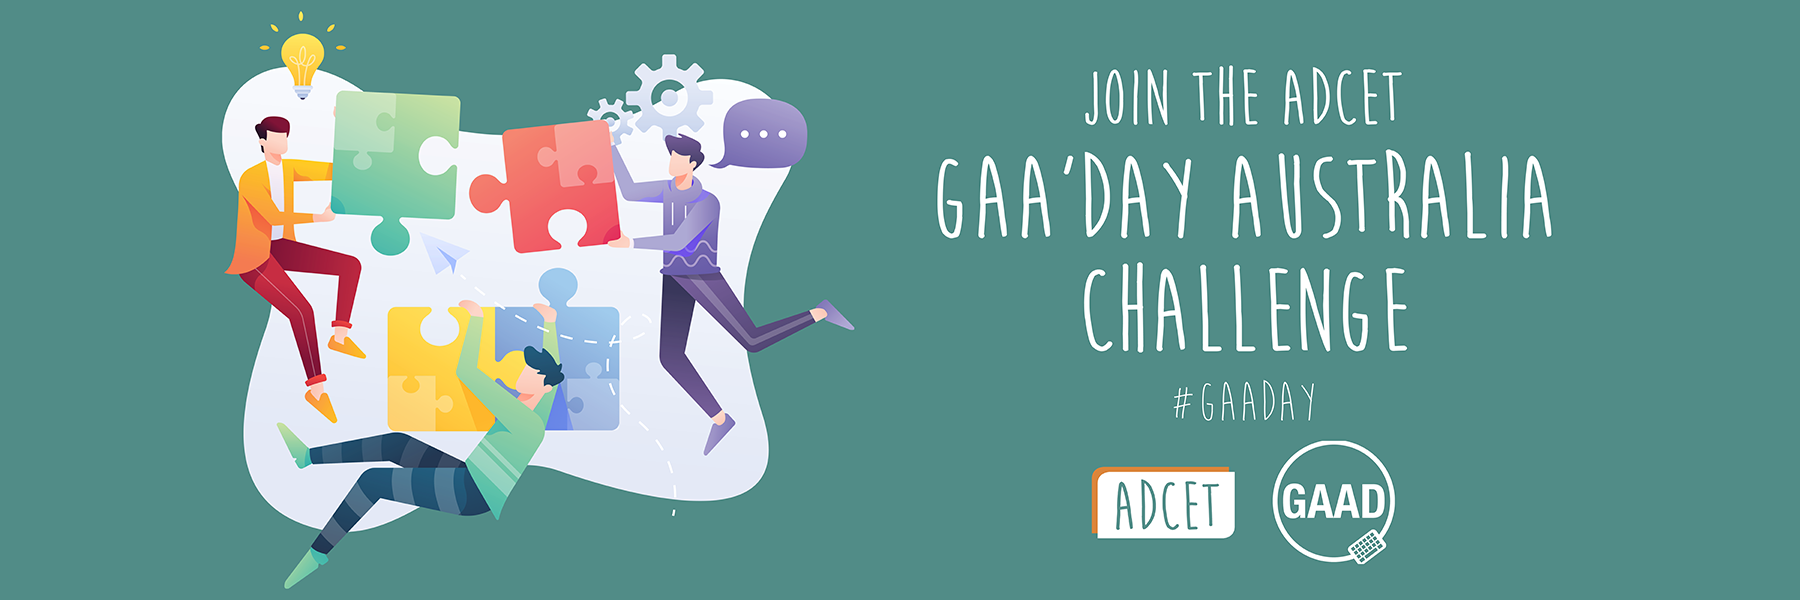 Text reading, Join the ADCET GAA'DAY Australia Challenge #GAADAY